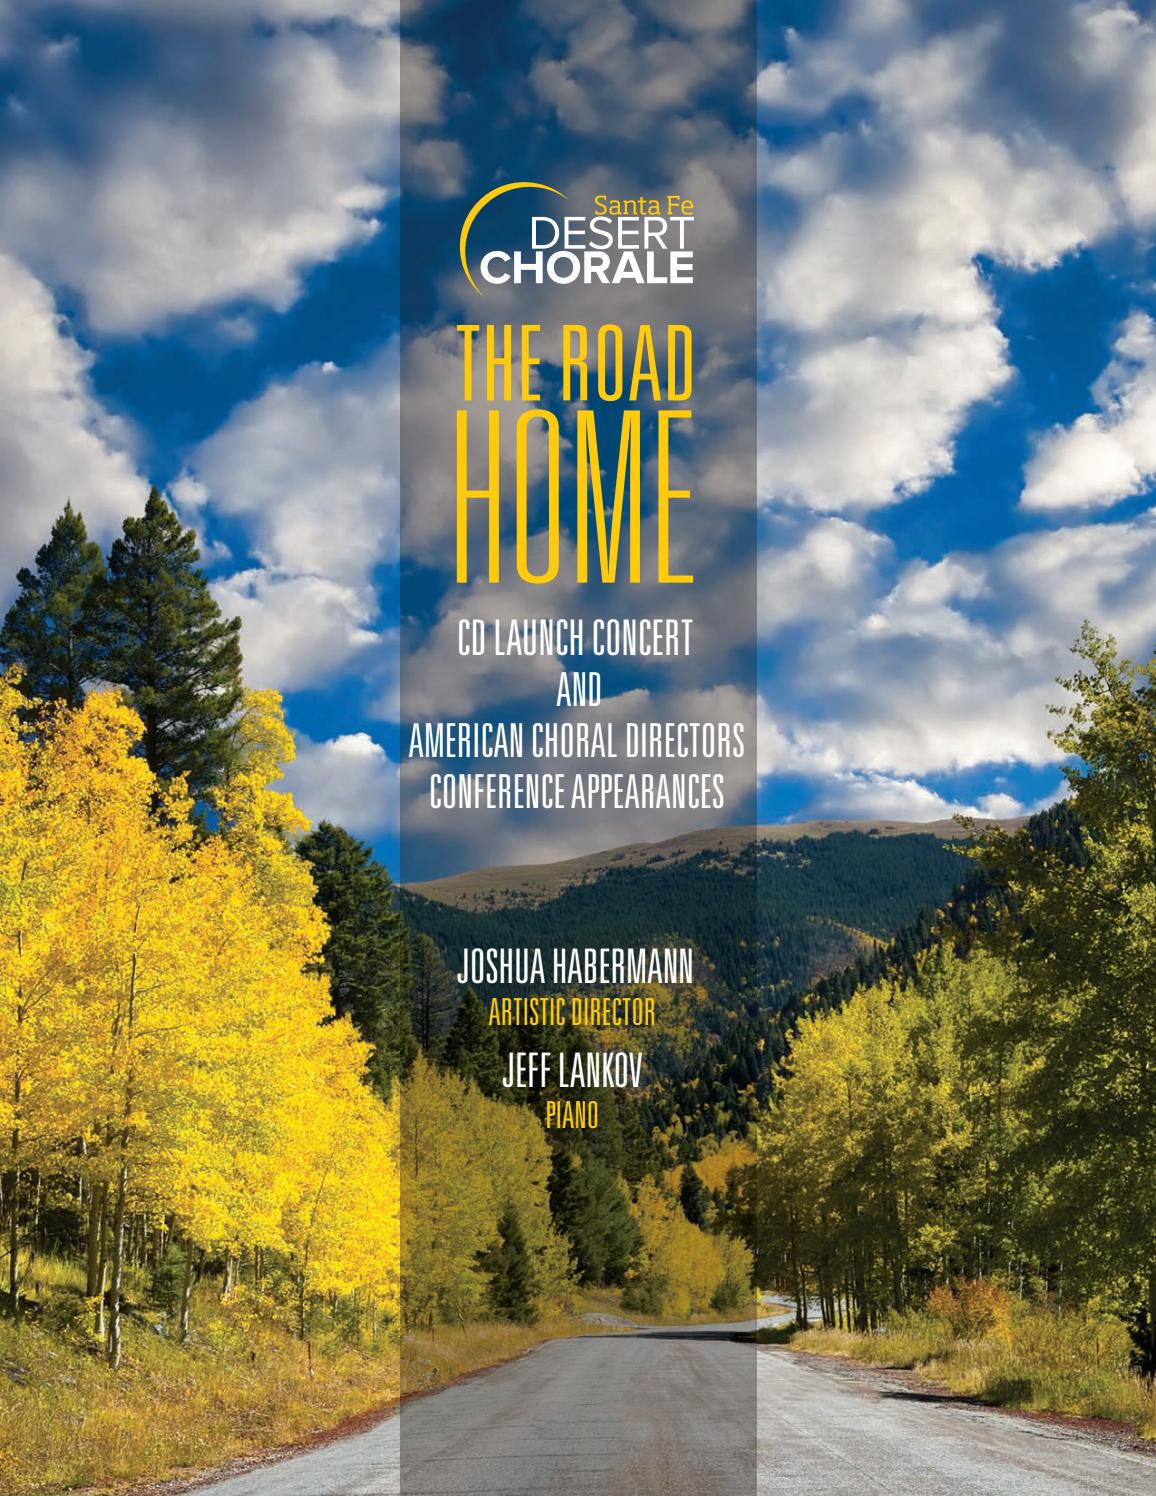 Santa Fe Desert Chorale CD Launch Program by DesertChorale - issuu